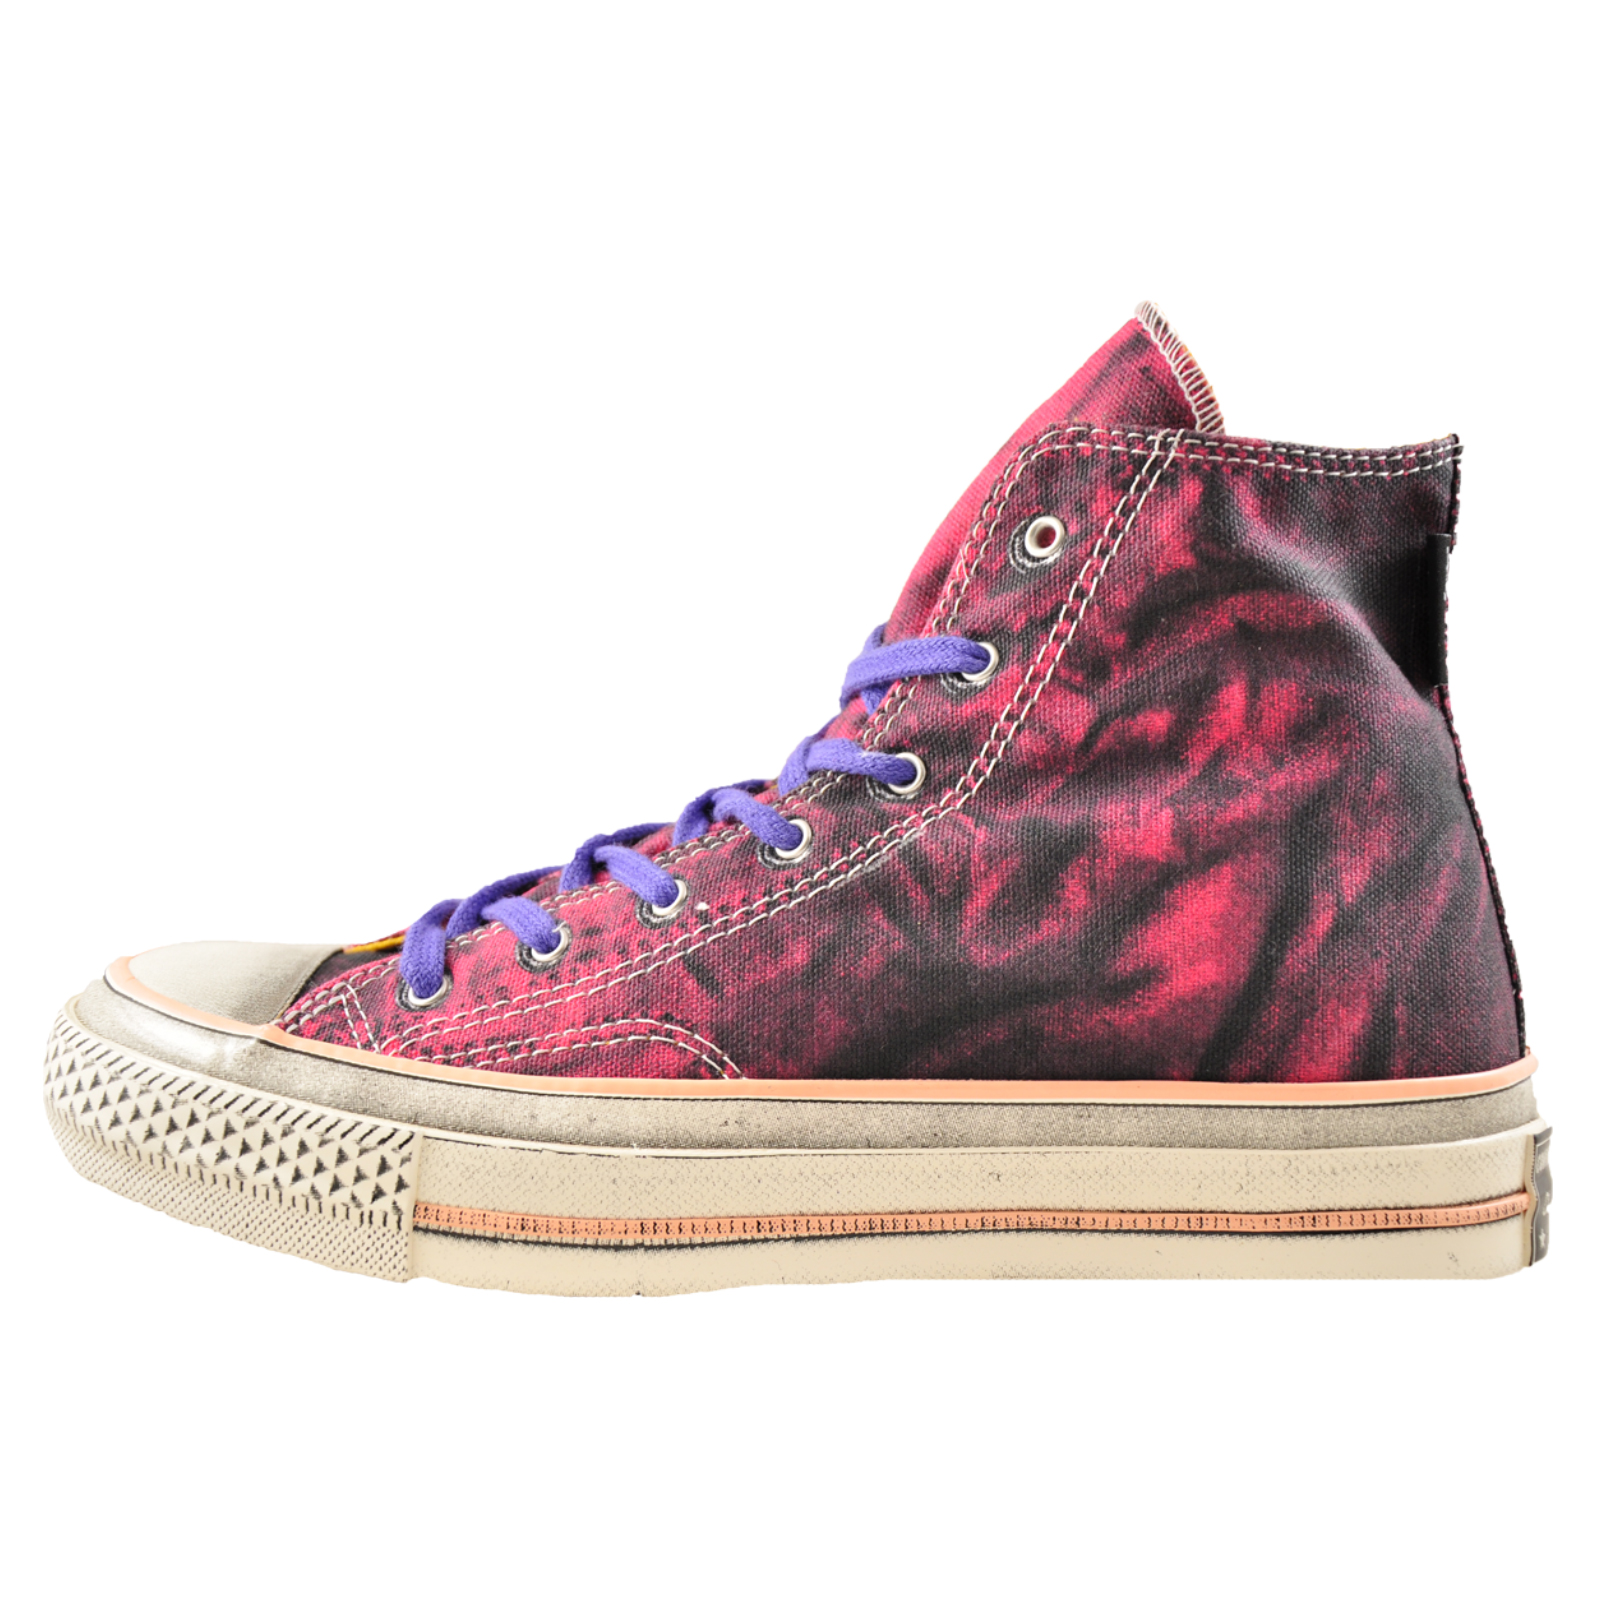 f7ee2102ccca8d Converse Chuck Taylor All Star Andy Warhol Hi Top Trainers Ltd Edition